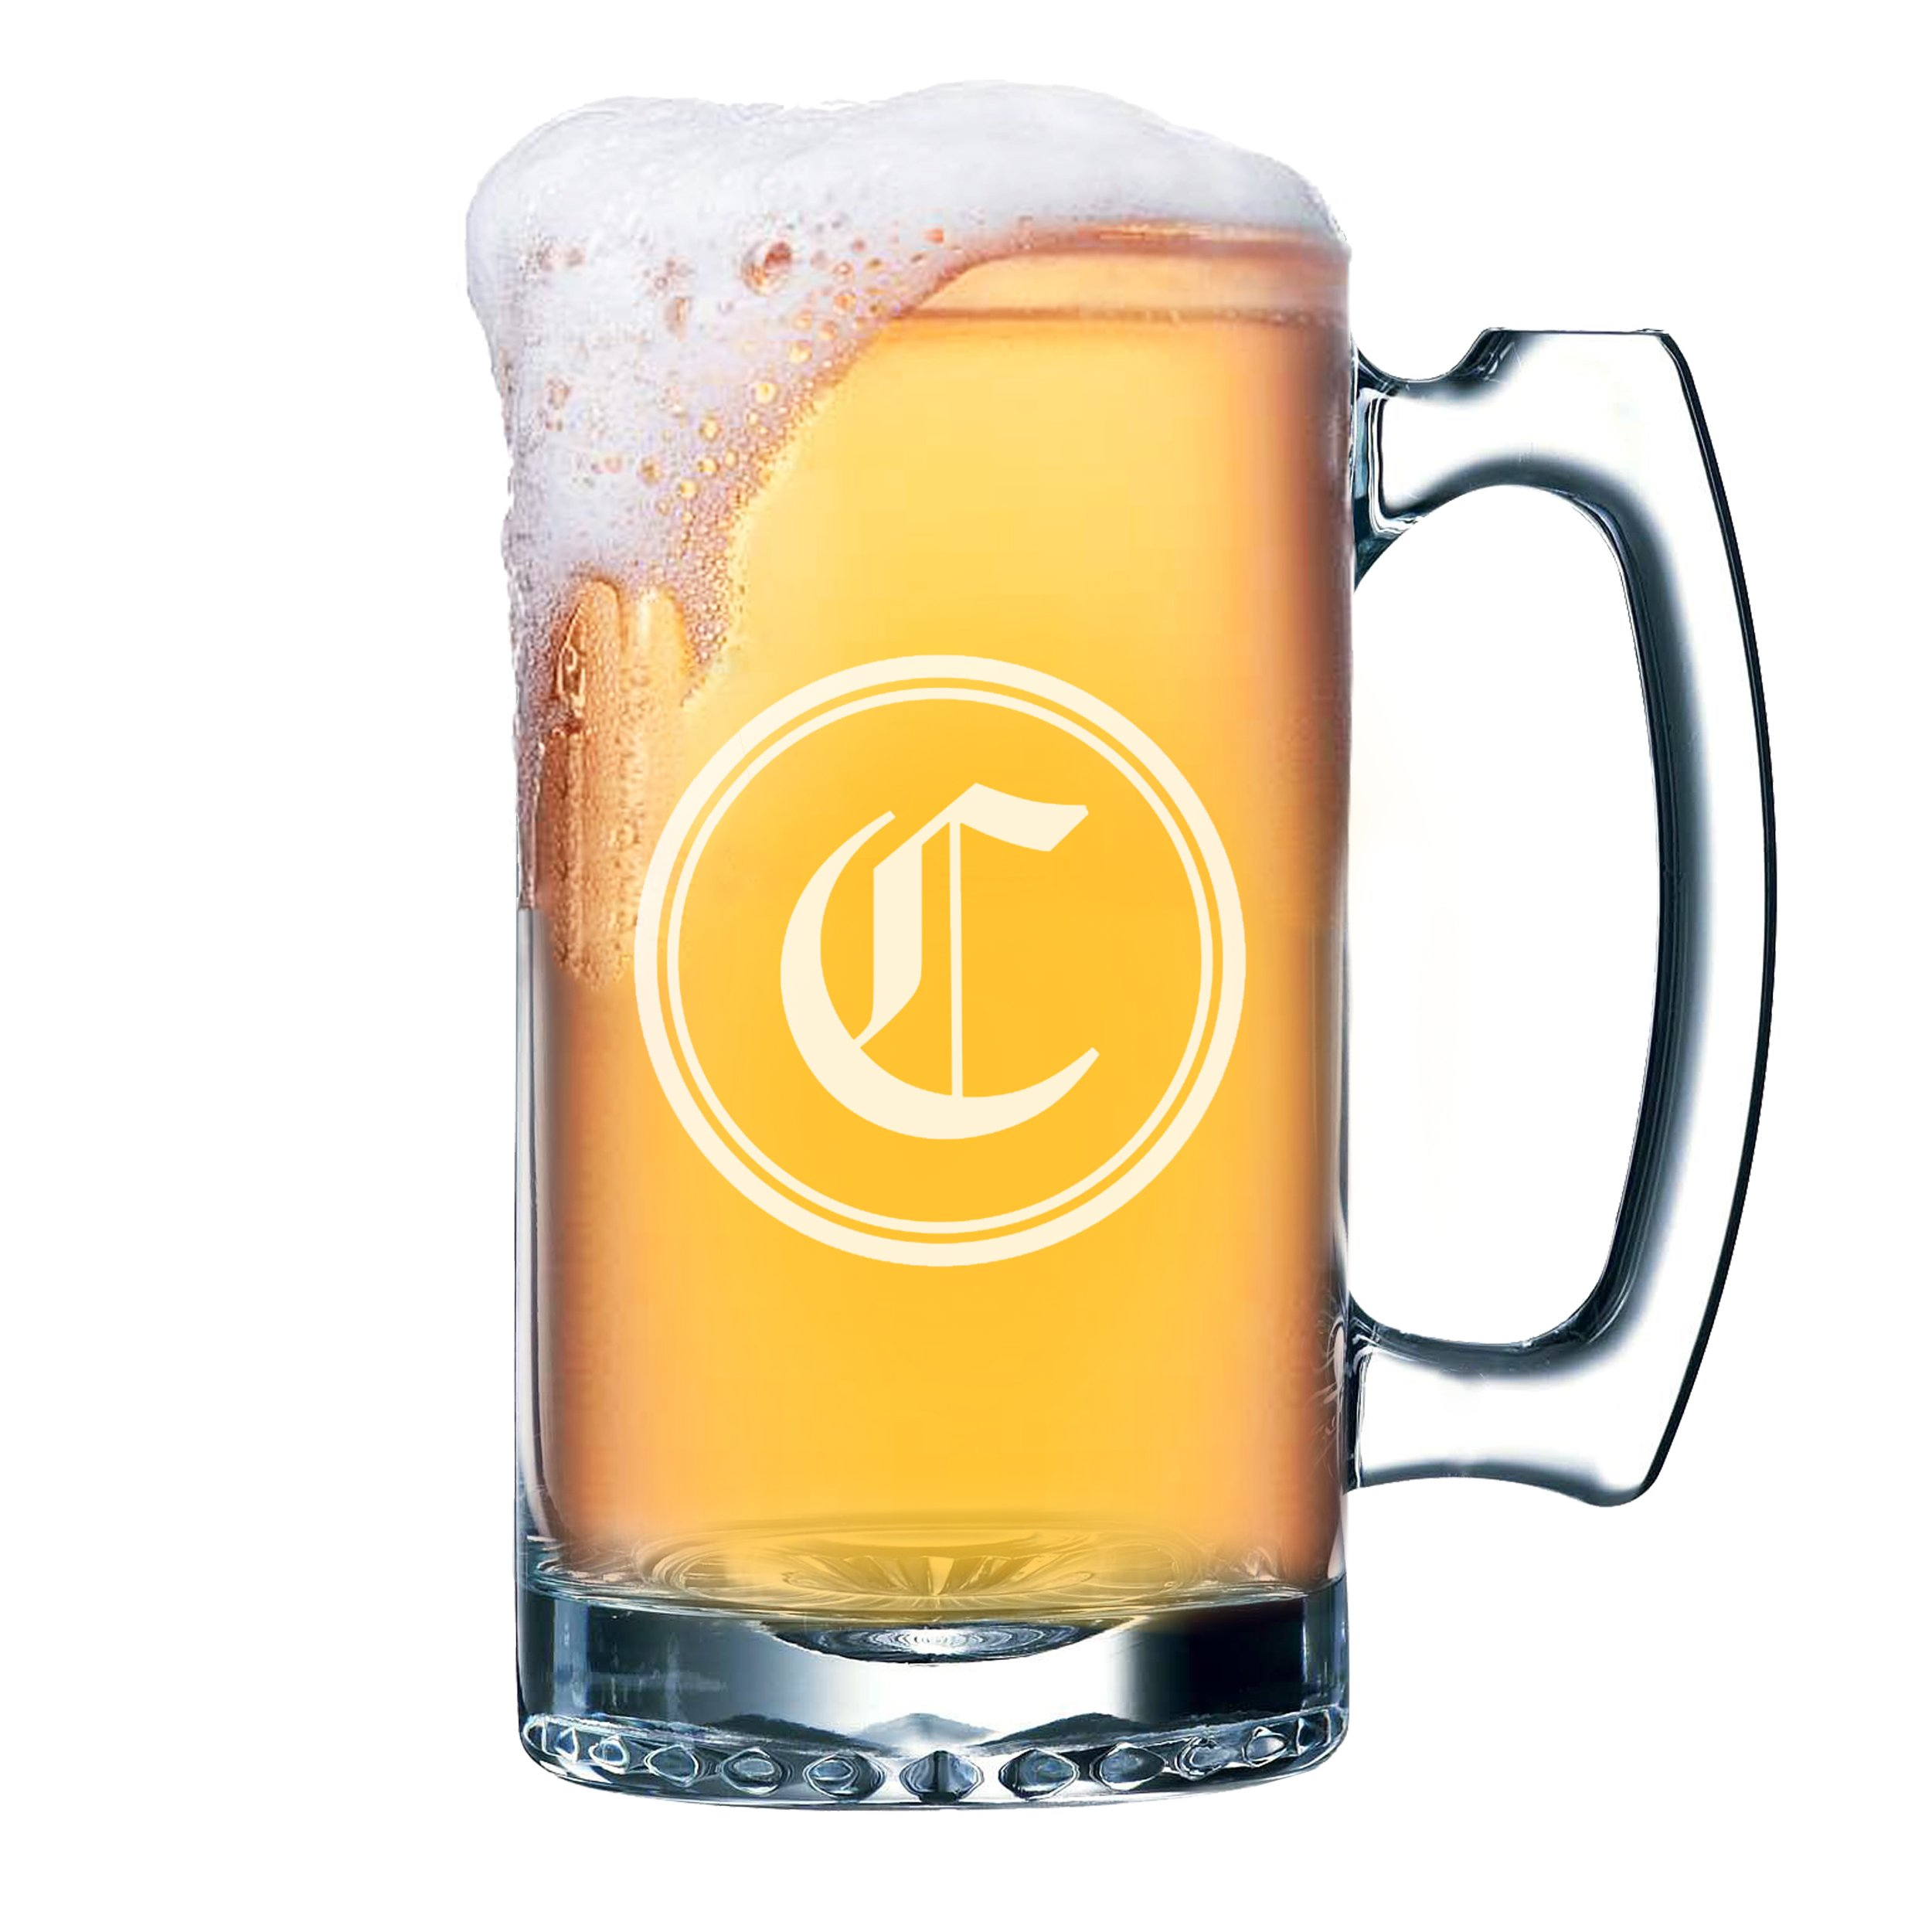 Wedding Party Beer Mugs - Custom Engraved Personalized Groomsmen Beer Glasses Gifts - 25 oz (Circle Initial Style - 25 oz)